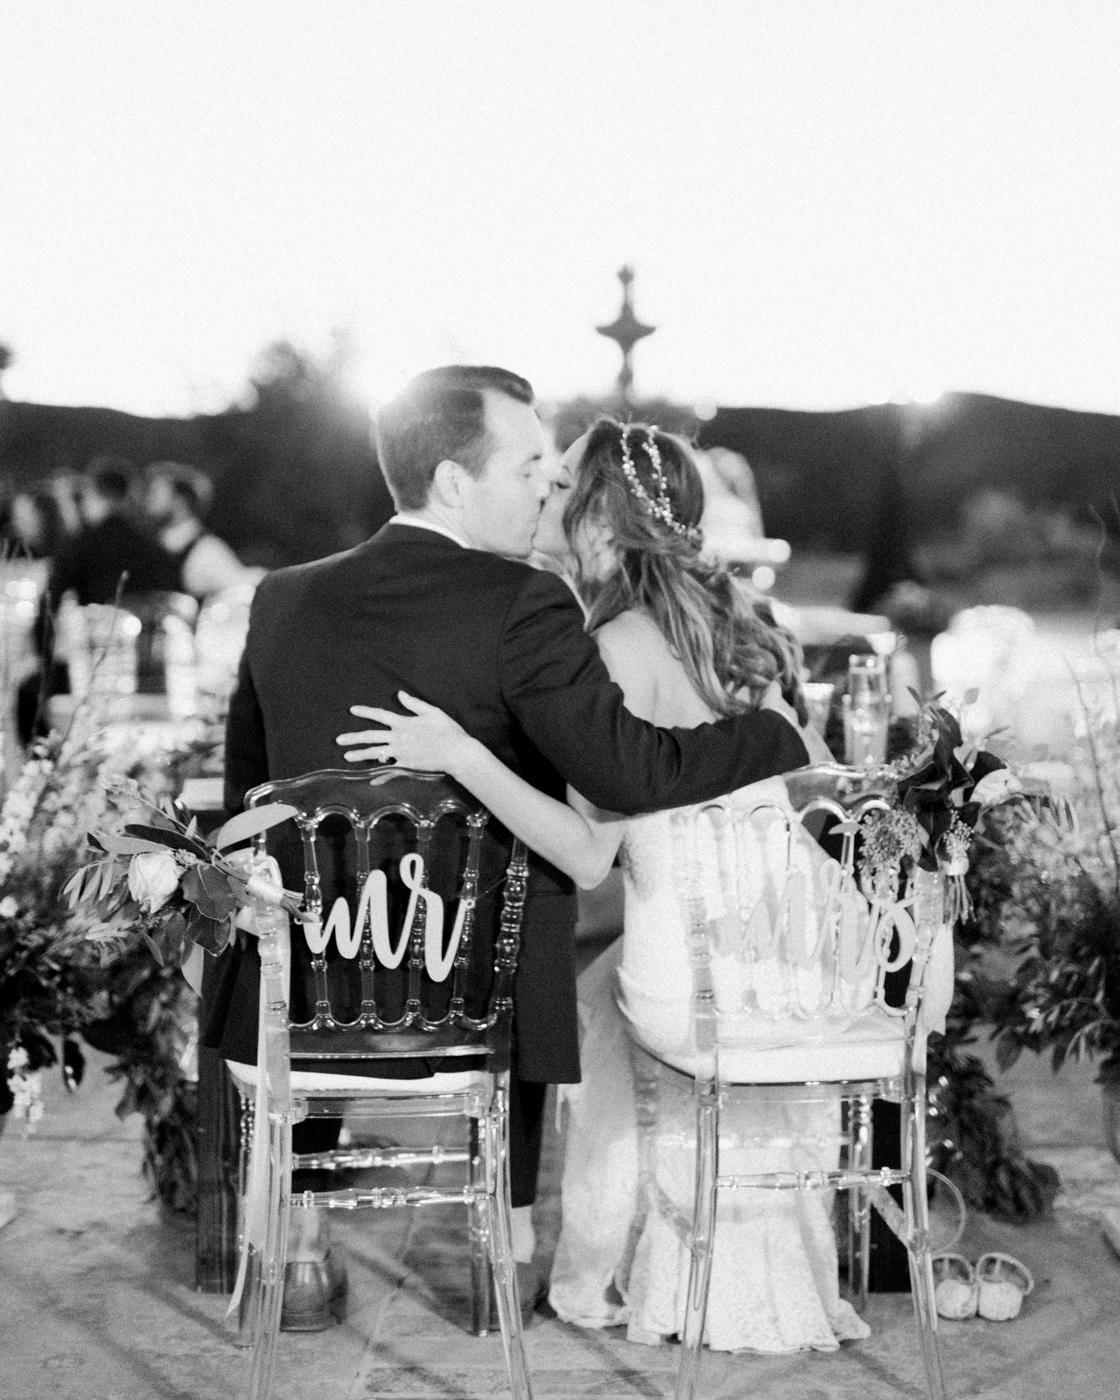 Hummingbird_Nest_Ranch_wedding_film_photography_los_angeles_photographer-41.jpg